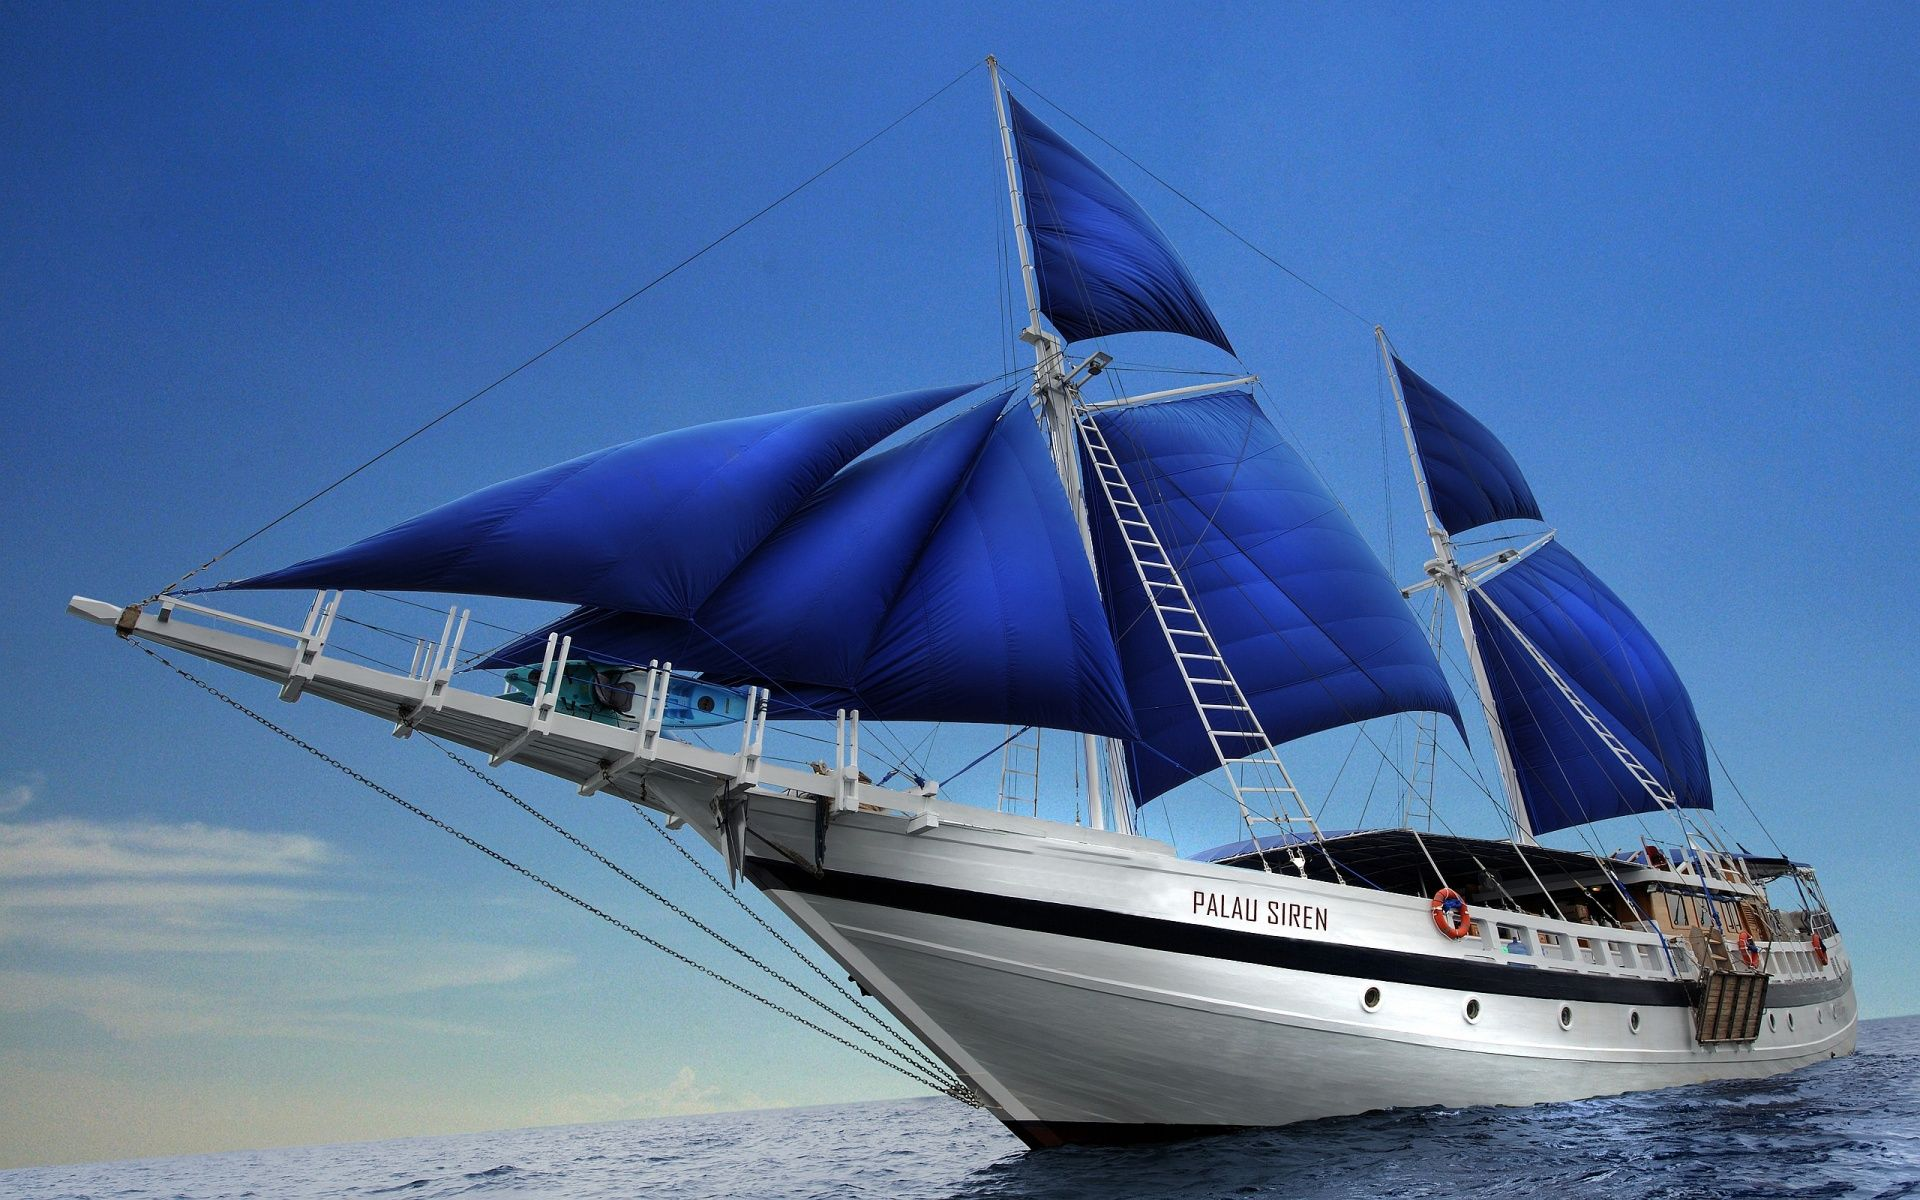 1000+ images about SAIL AWAY!! on Pinterest | Wallpaper for mobile ...